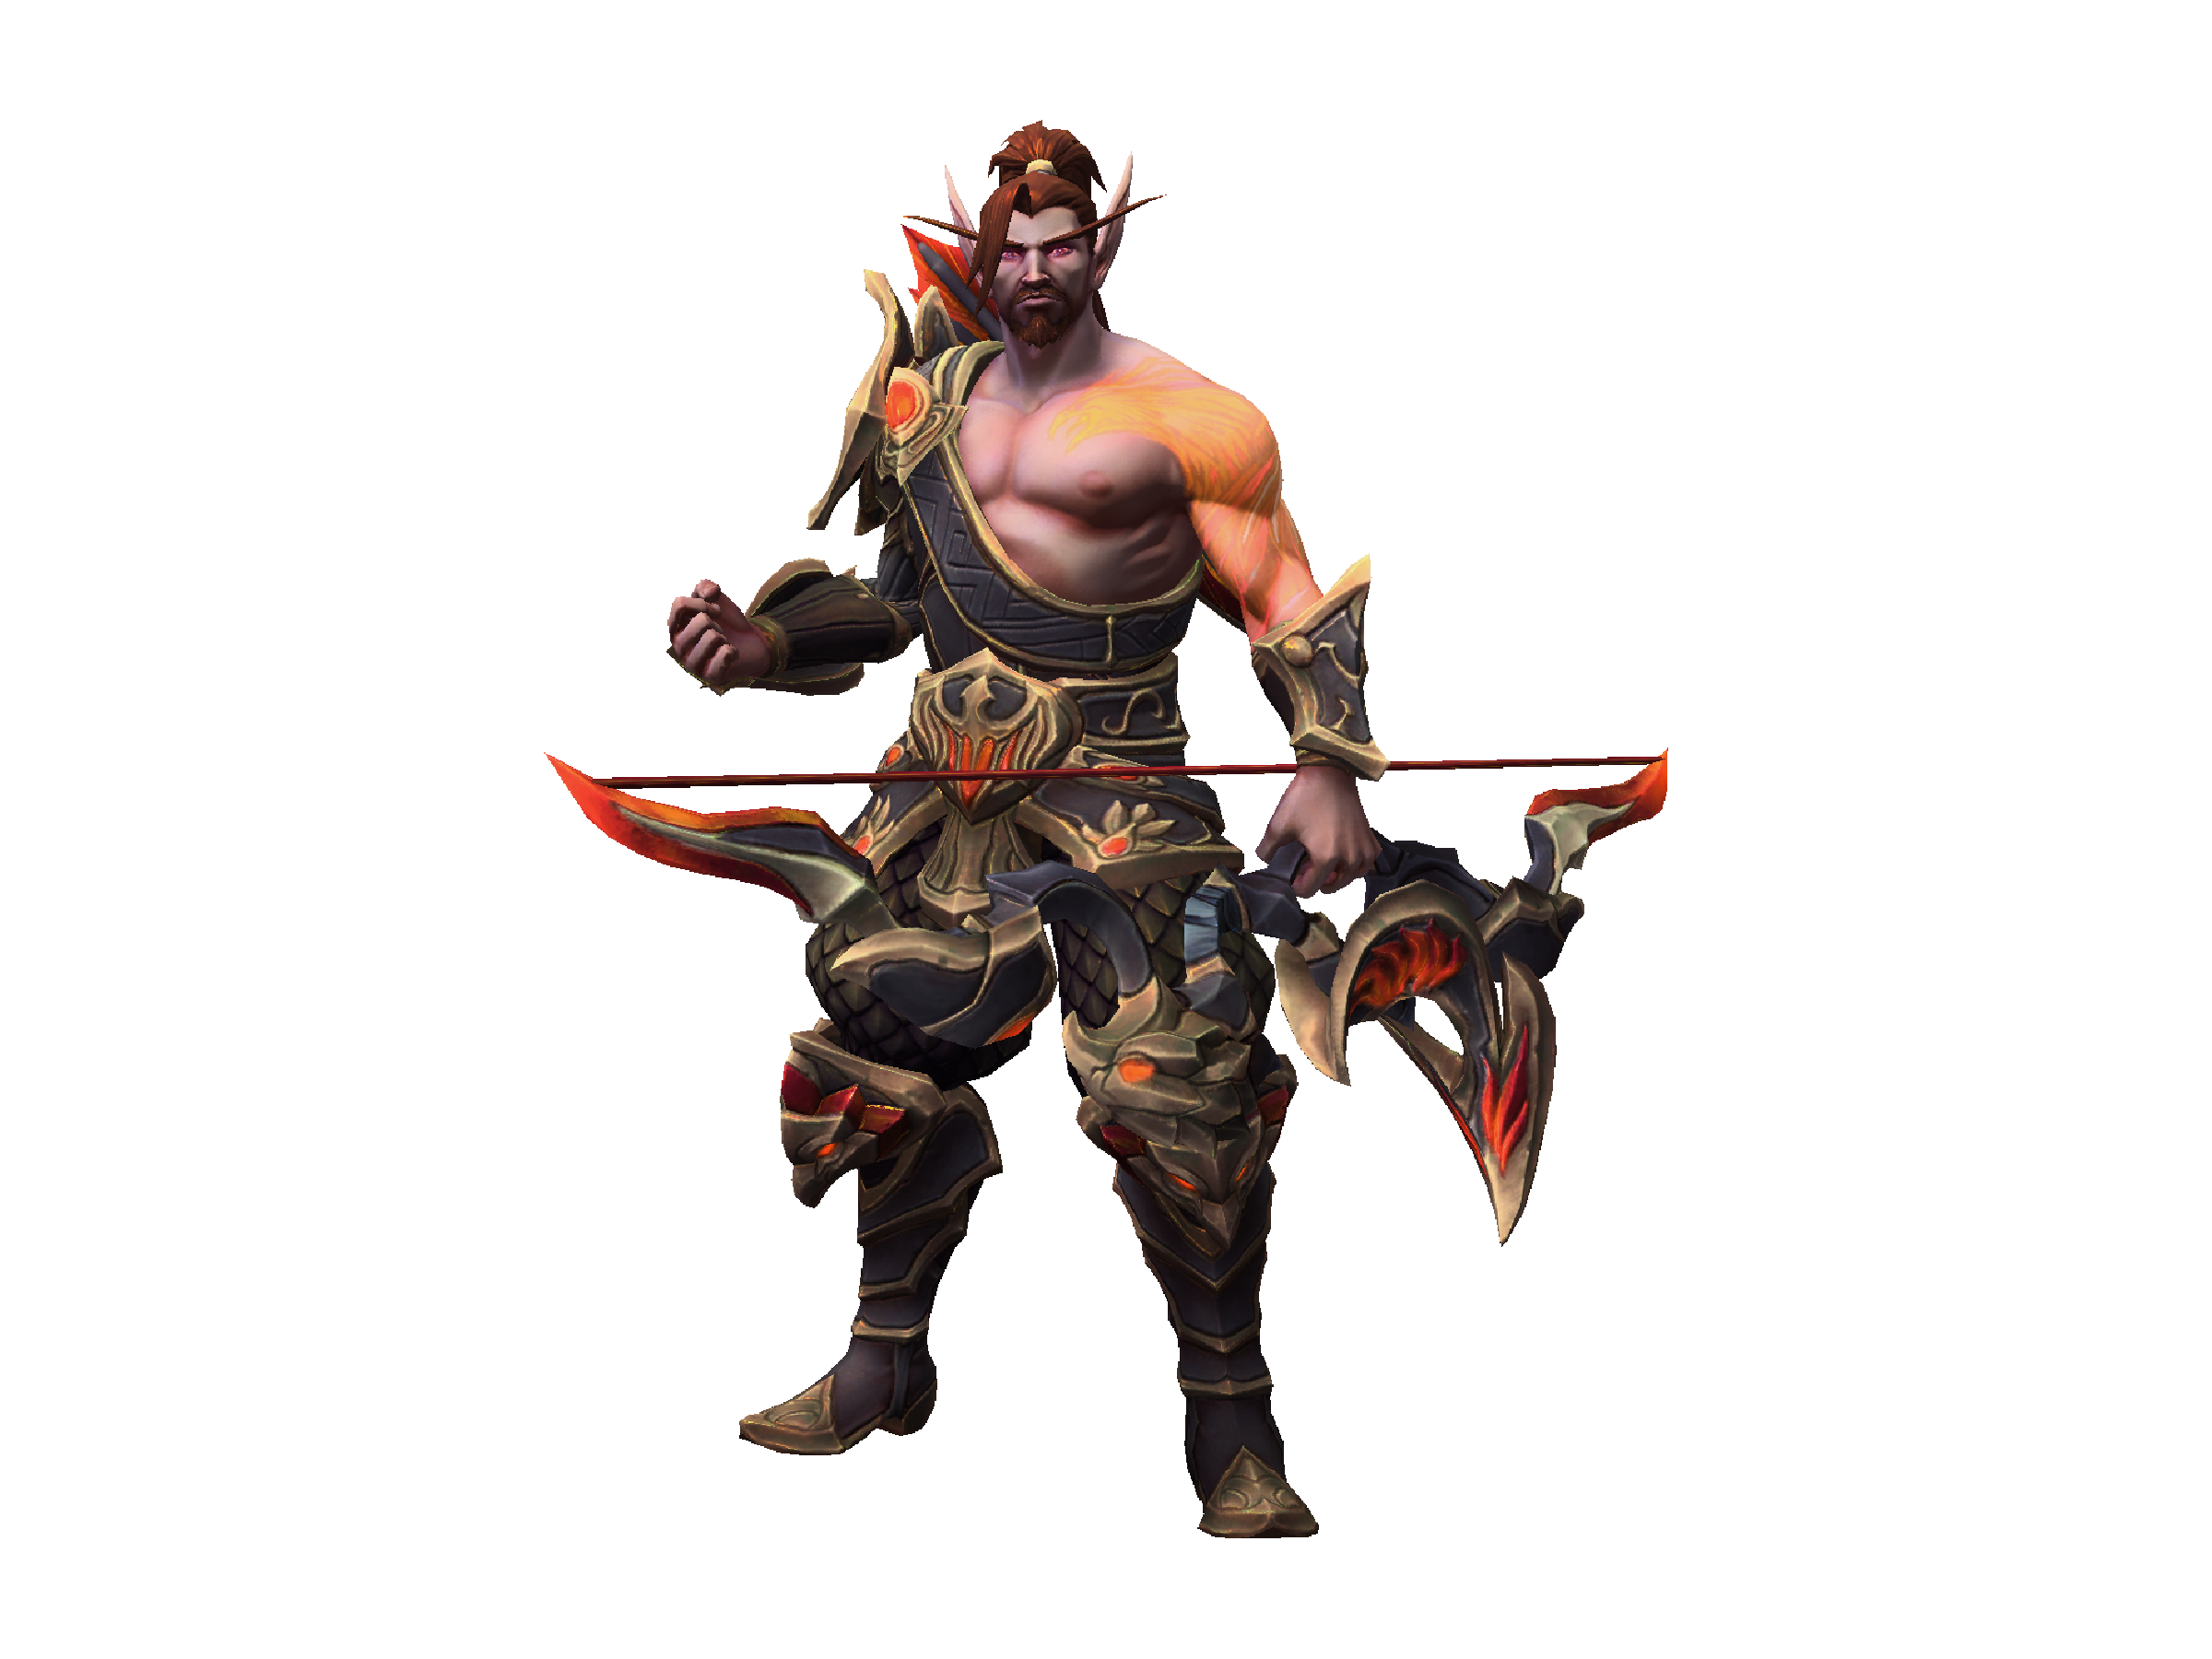 Hanzo Png & Free Hanzo.png Transparent Images #29400.